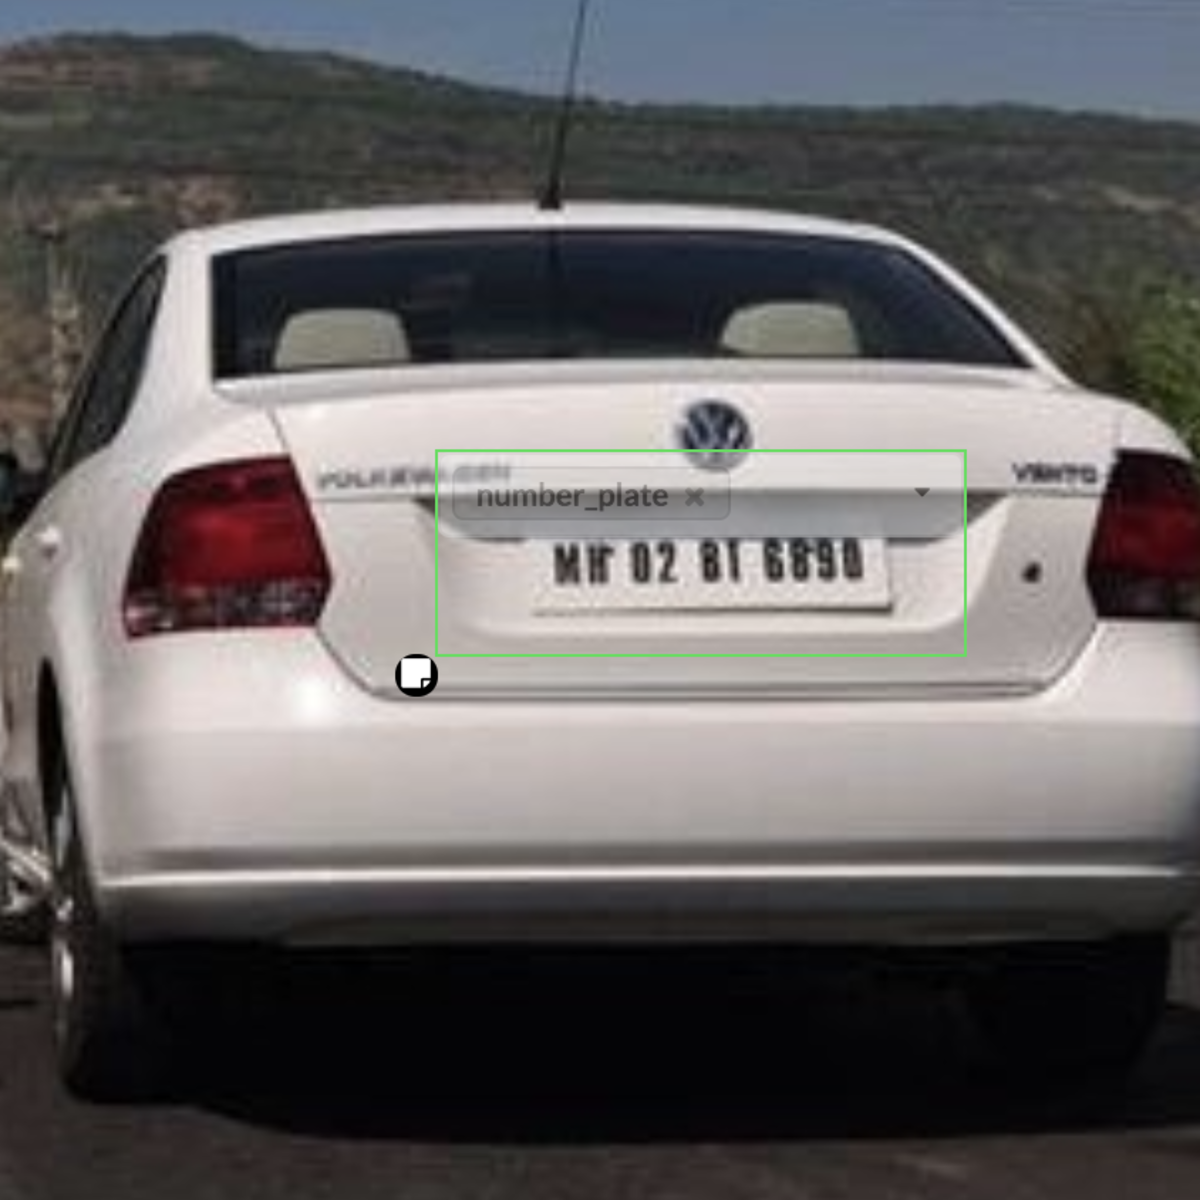 Vehicle Number Plate Detection | Kaggle